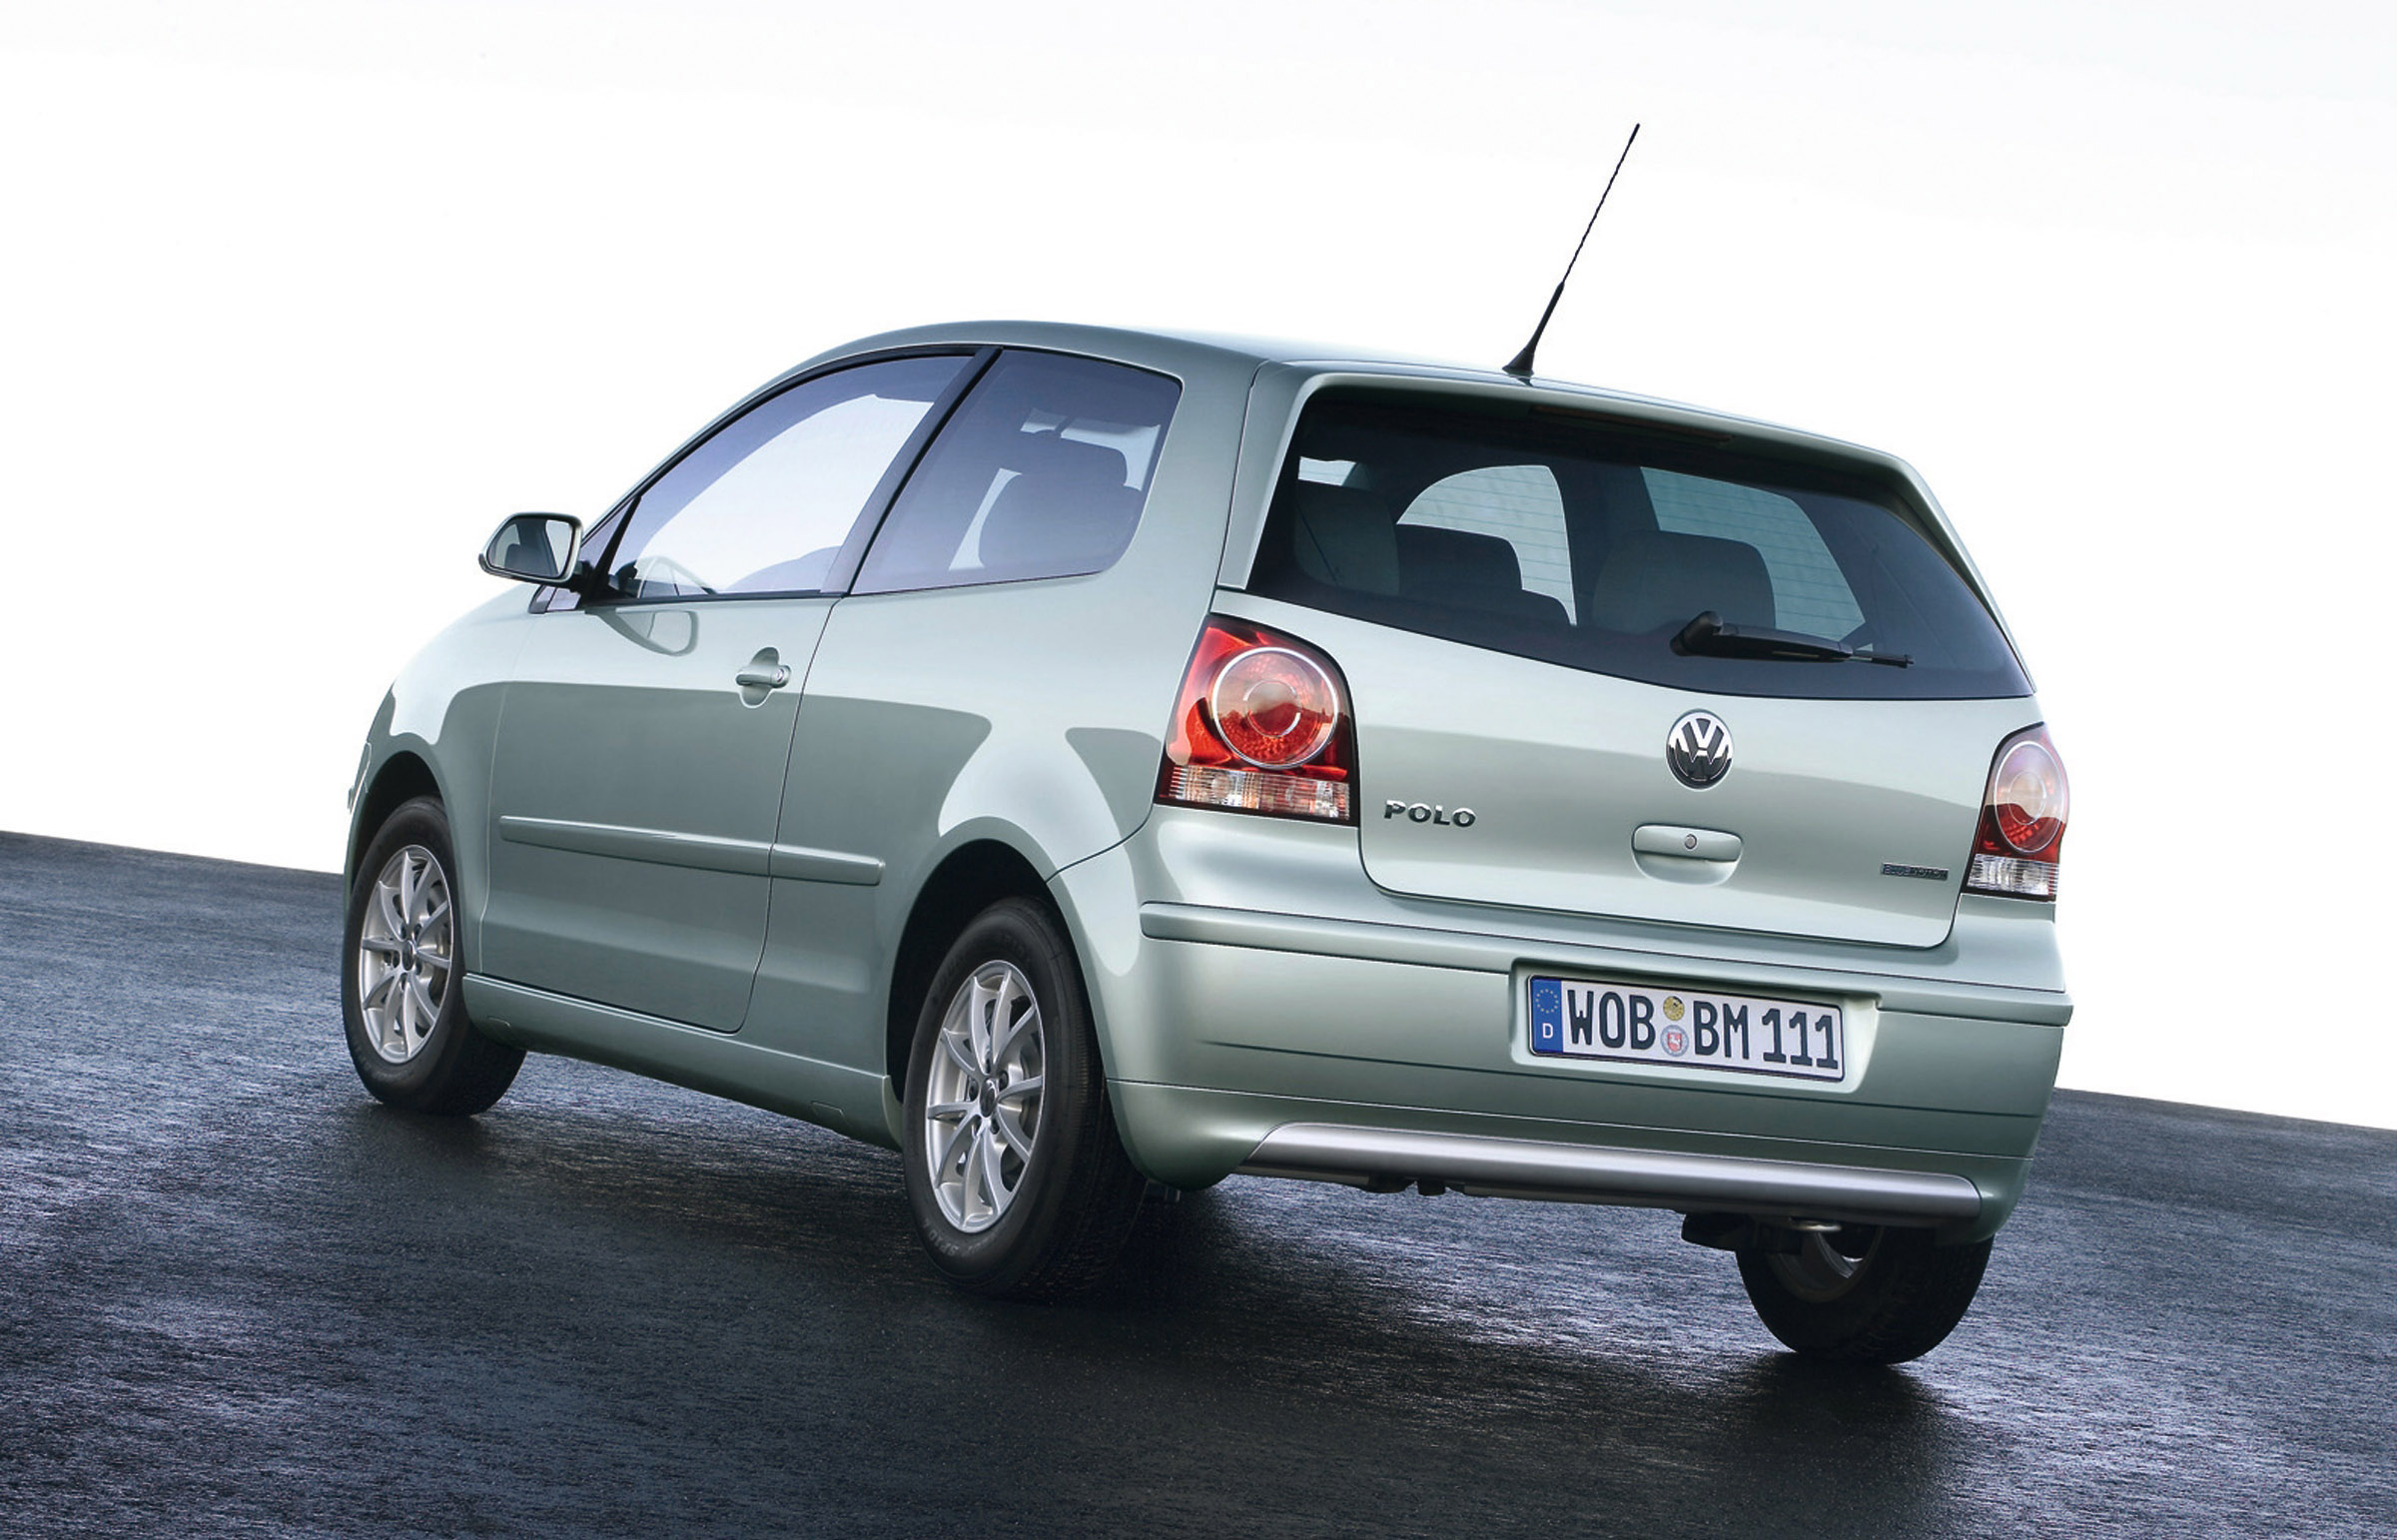 2006 volkswagen polo bluemotion hd pictures. Black Bedroom Furniture Sets. Home Design Ideas